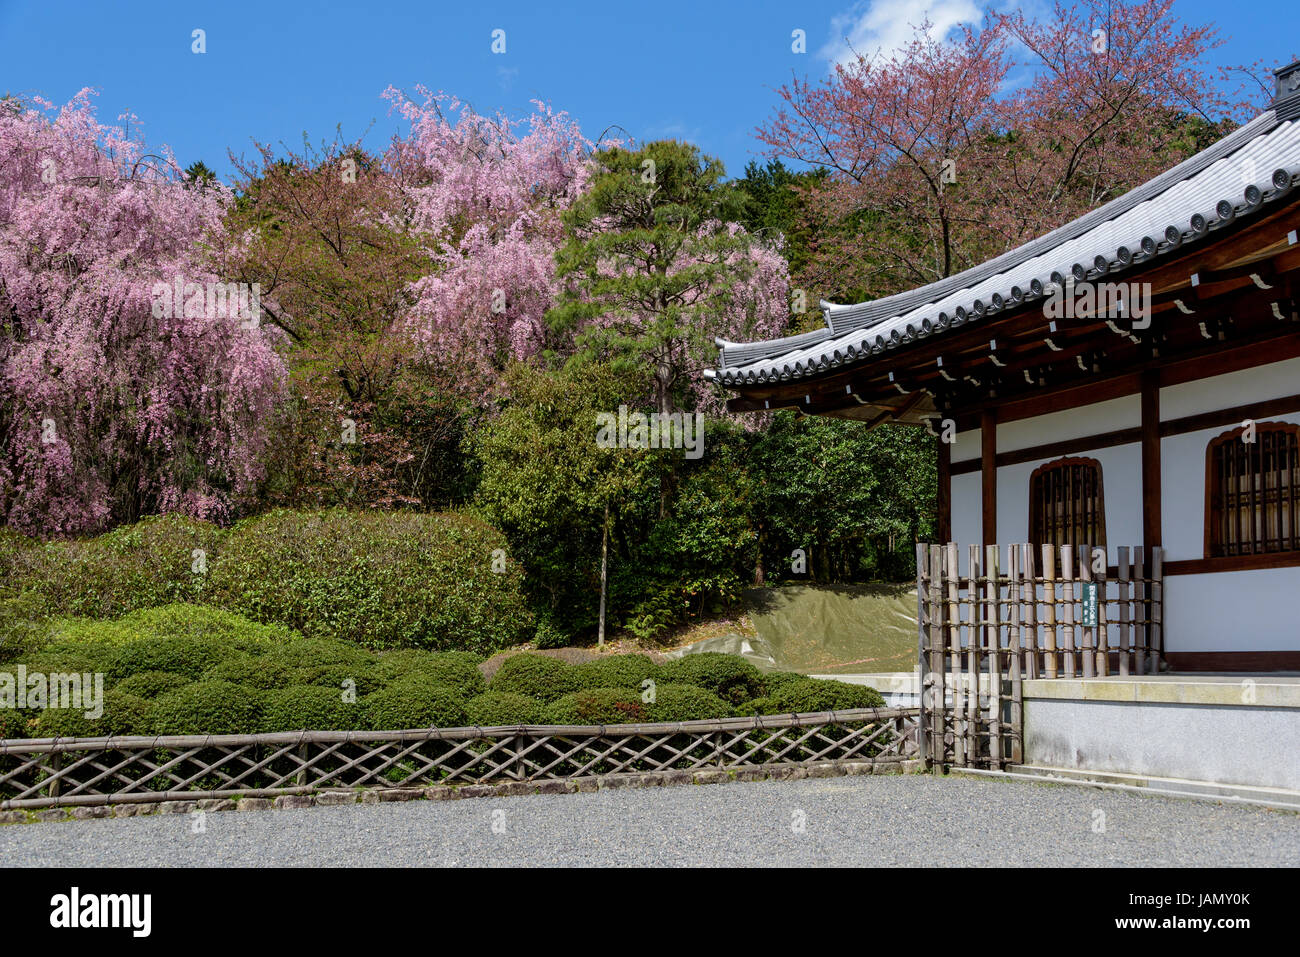 Traditional architecture and garden of Kuri building in the Ryoanji temple Stock Photo